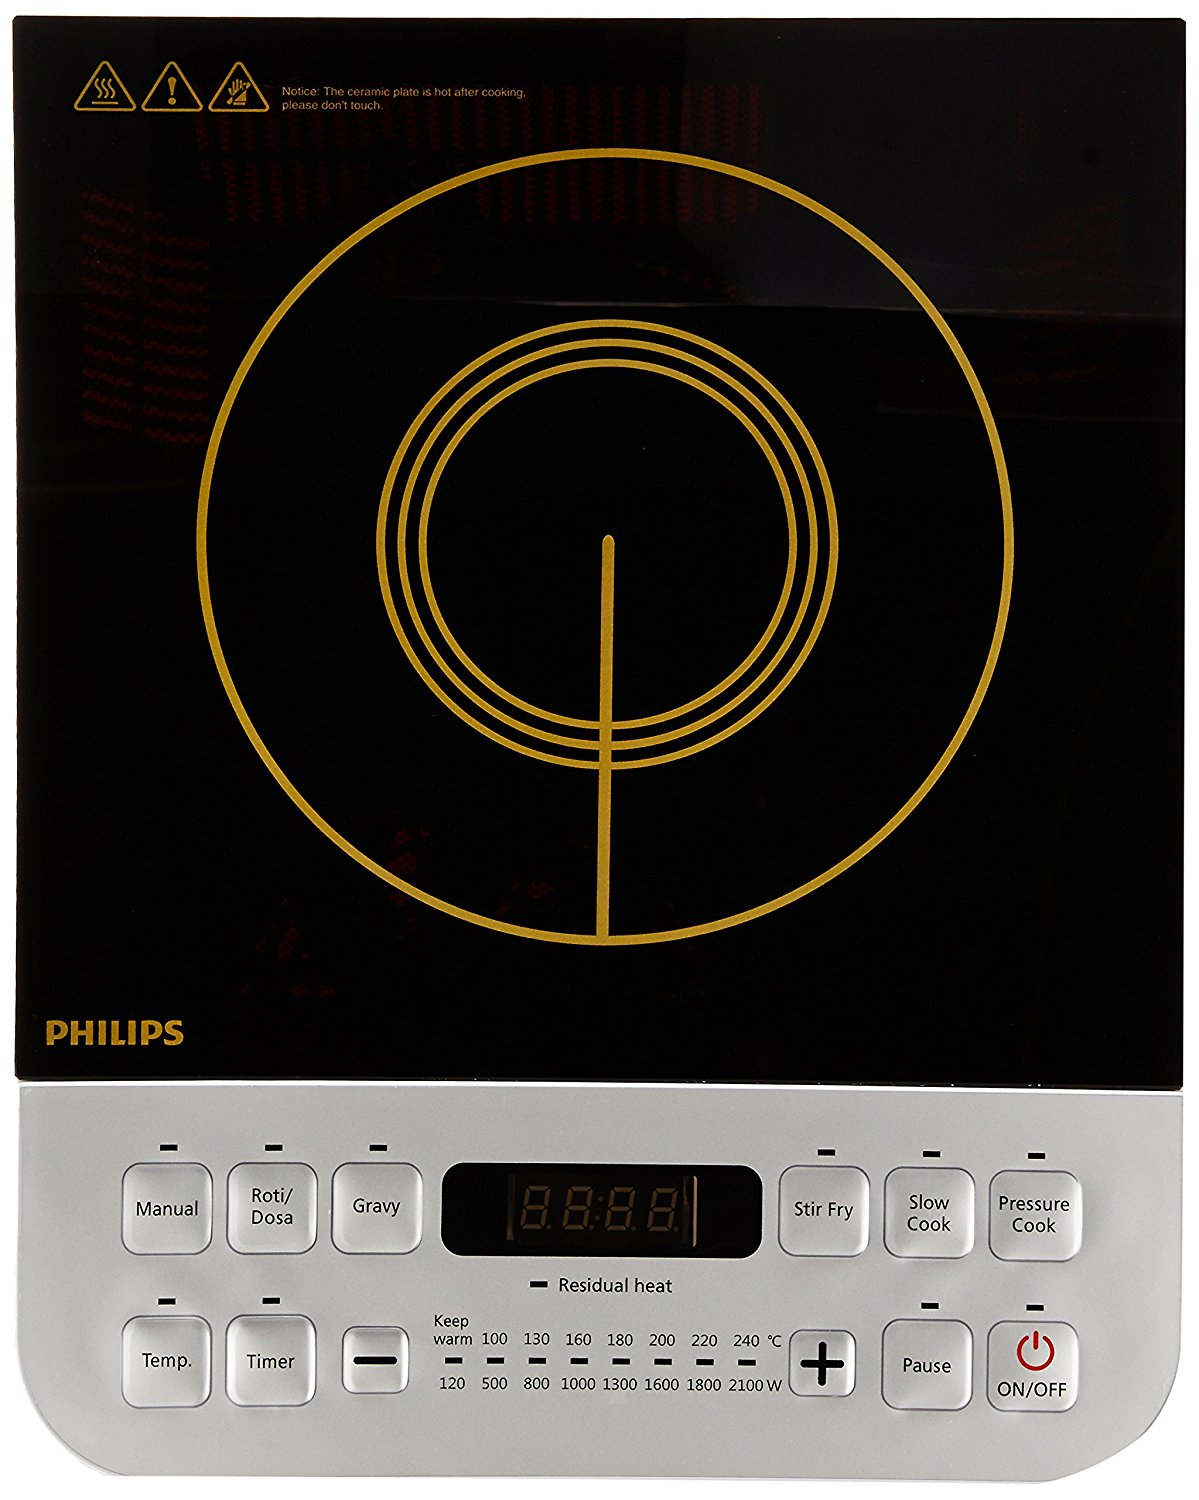 Philips HD4928 Induction Cook Top at shopclues